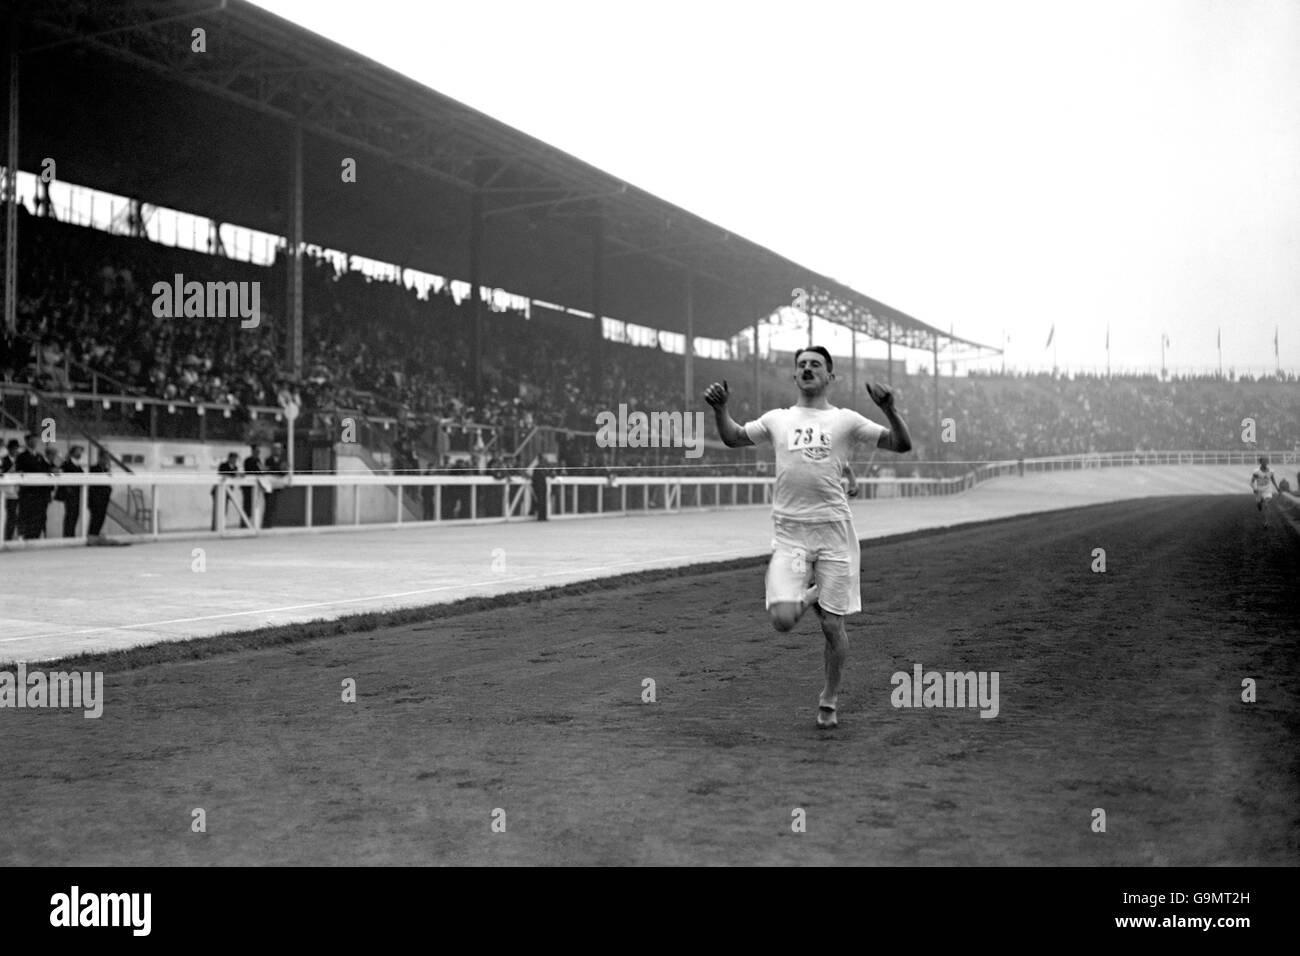 Athletics - London Olympic Games 1908 - 400m - Heat 15 - White City Stock Photo